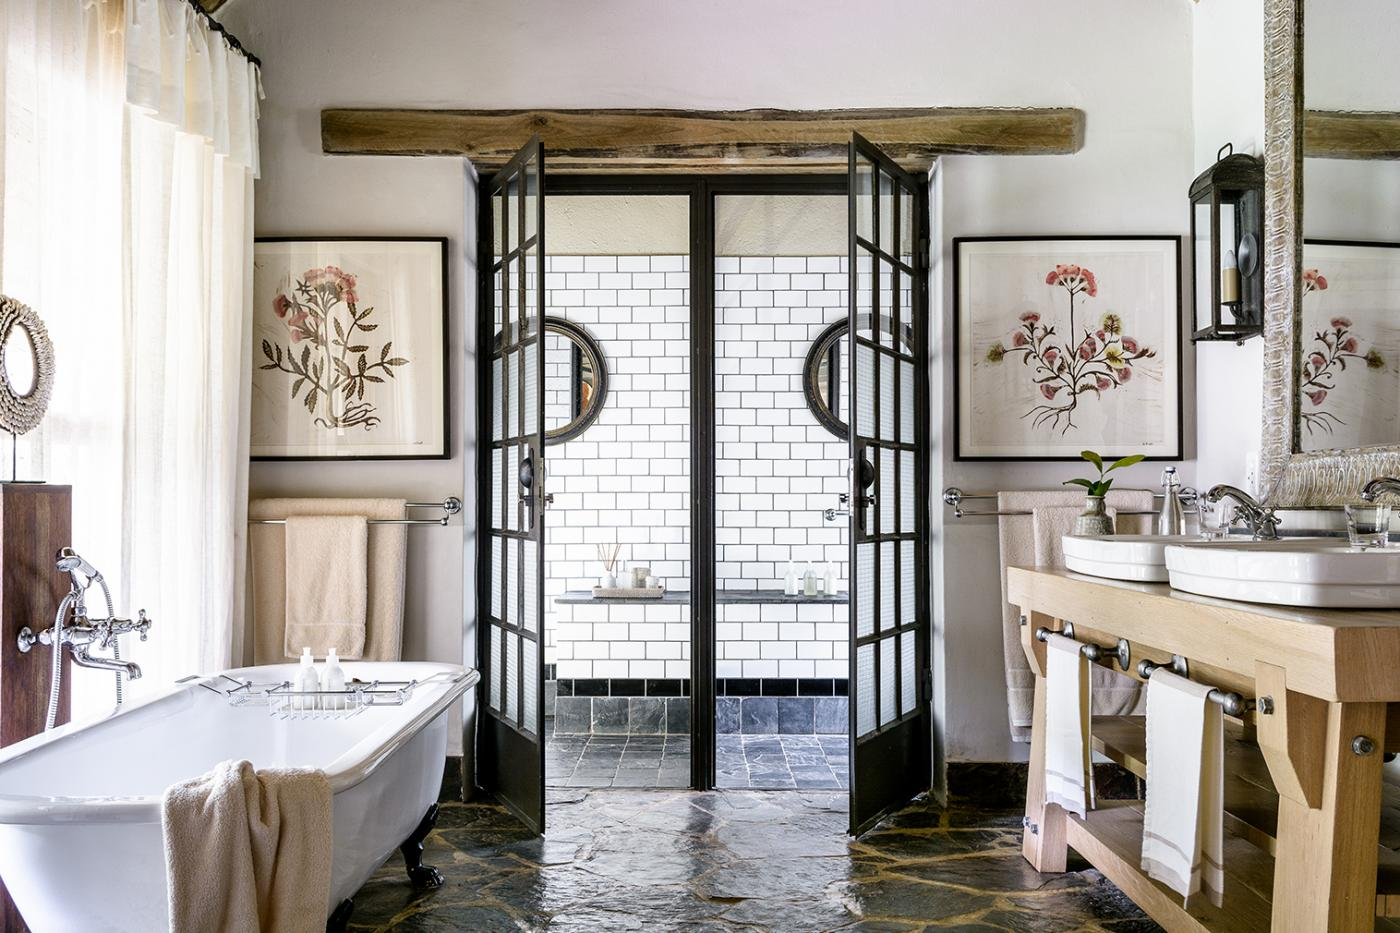 Who knew bathrooms in the plains of South Africa could be so luxurious.